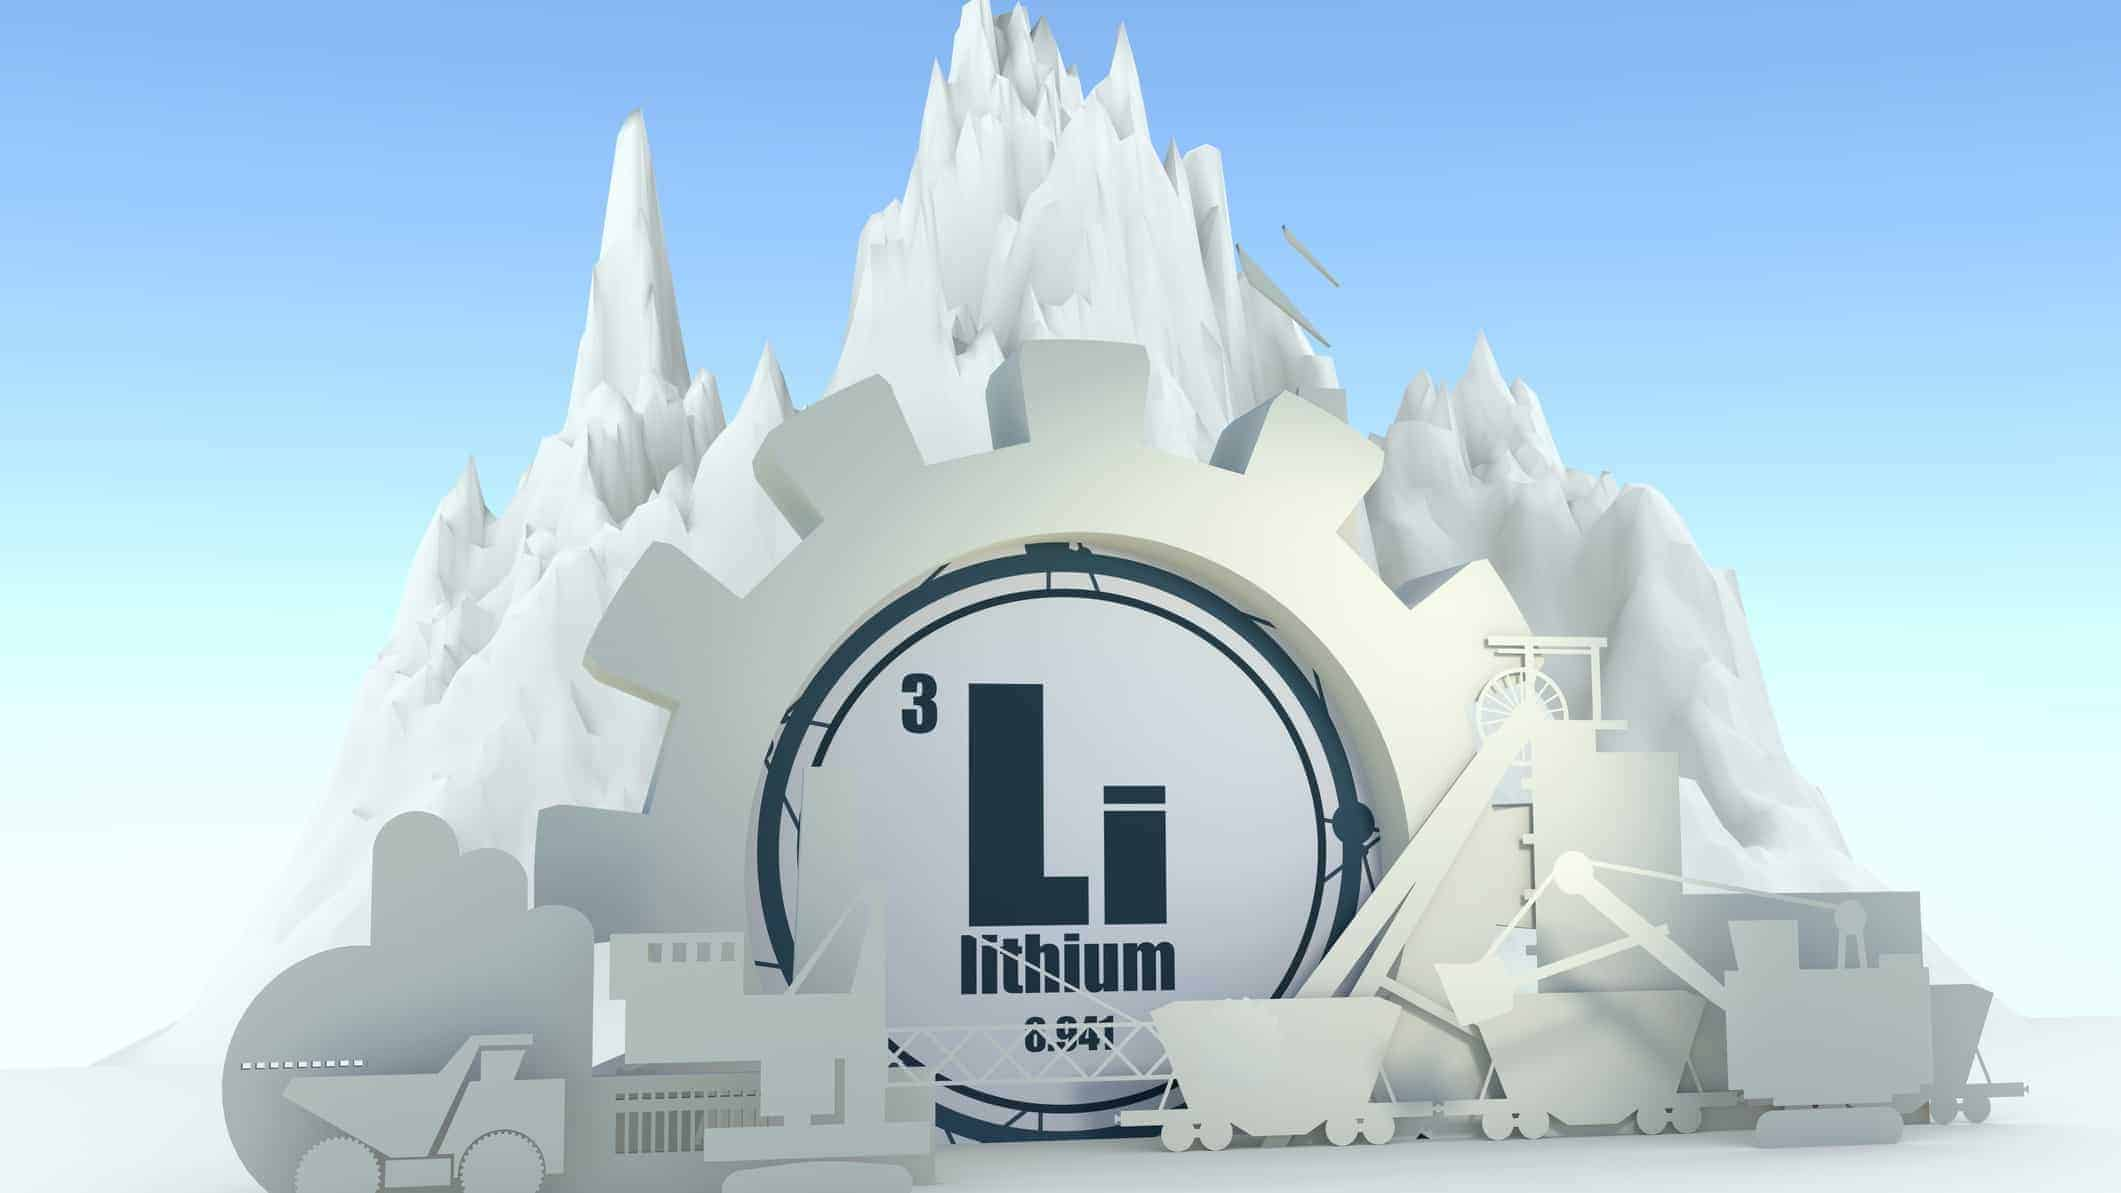 Liontown Resources (ASX:LTR) share price lifts after lithium update